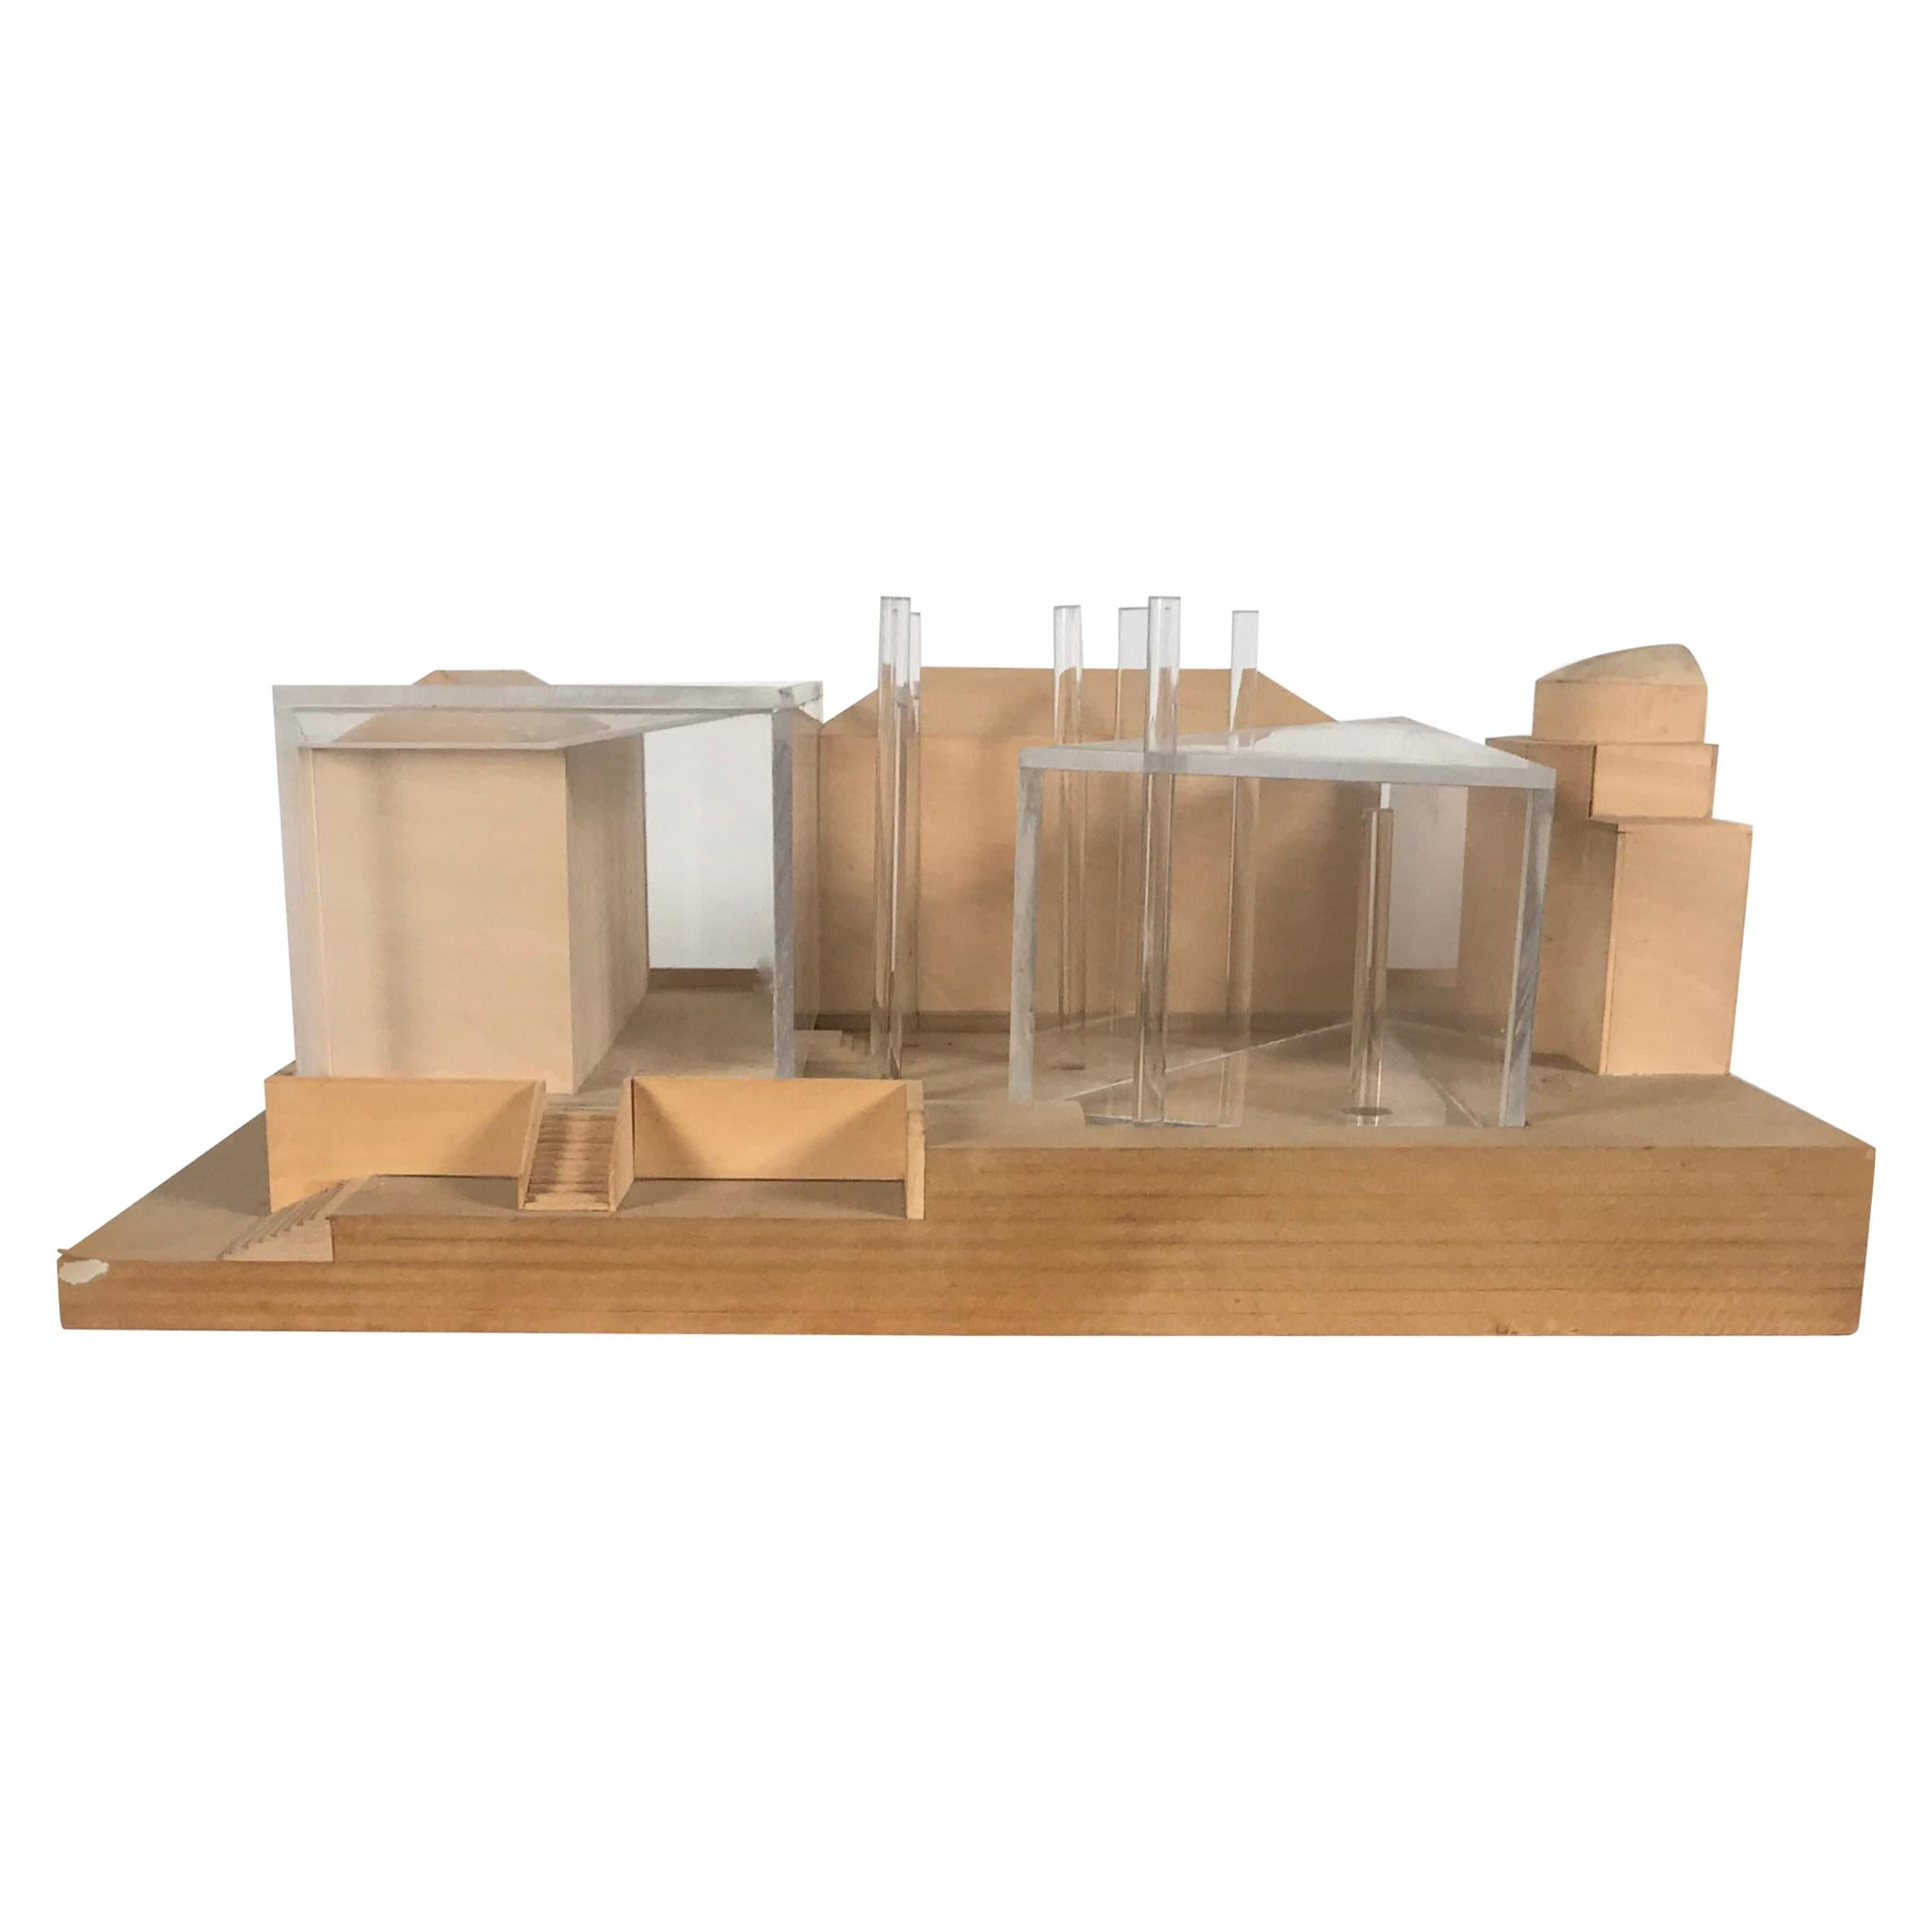 Modernist Wood and Acrylic Architectural Model Columbia University, circa 1970s